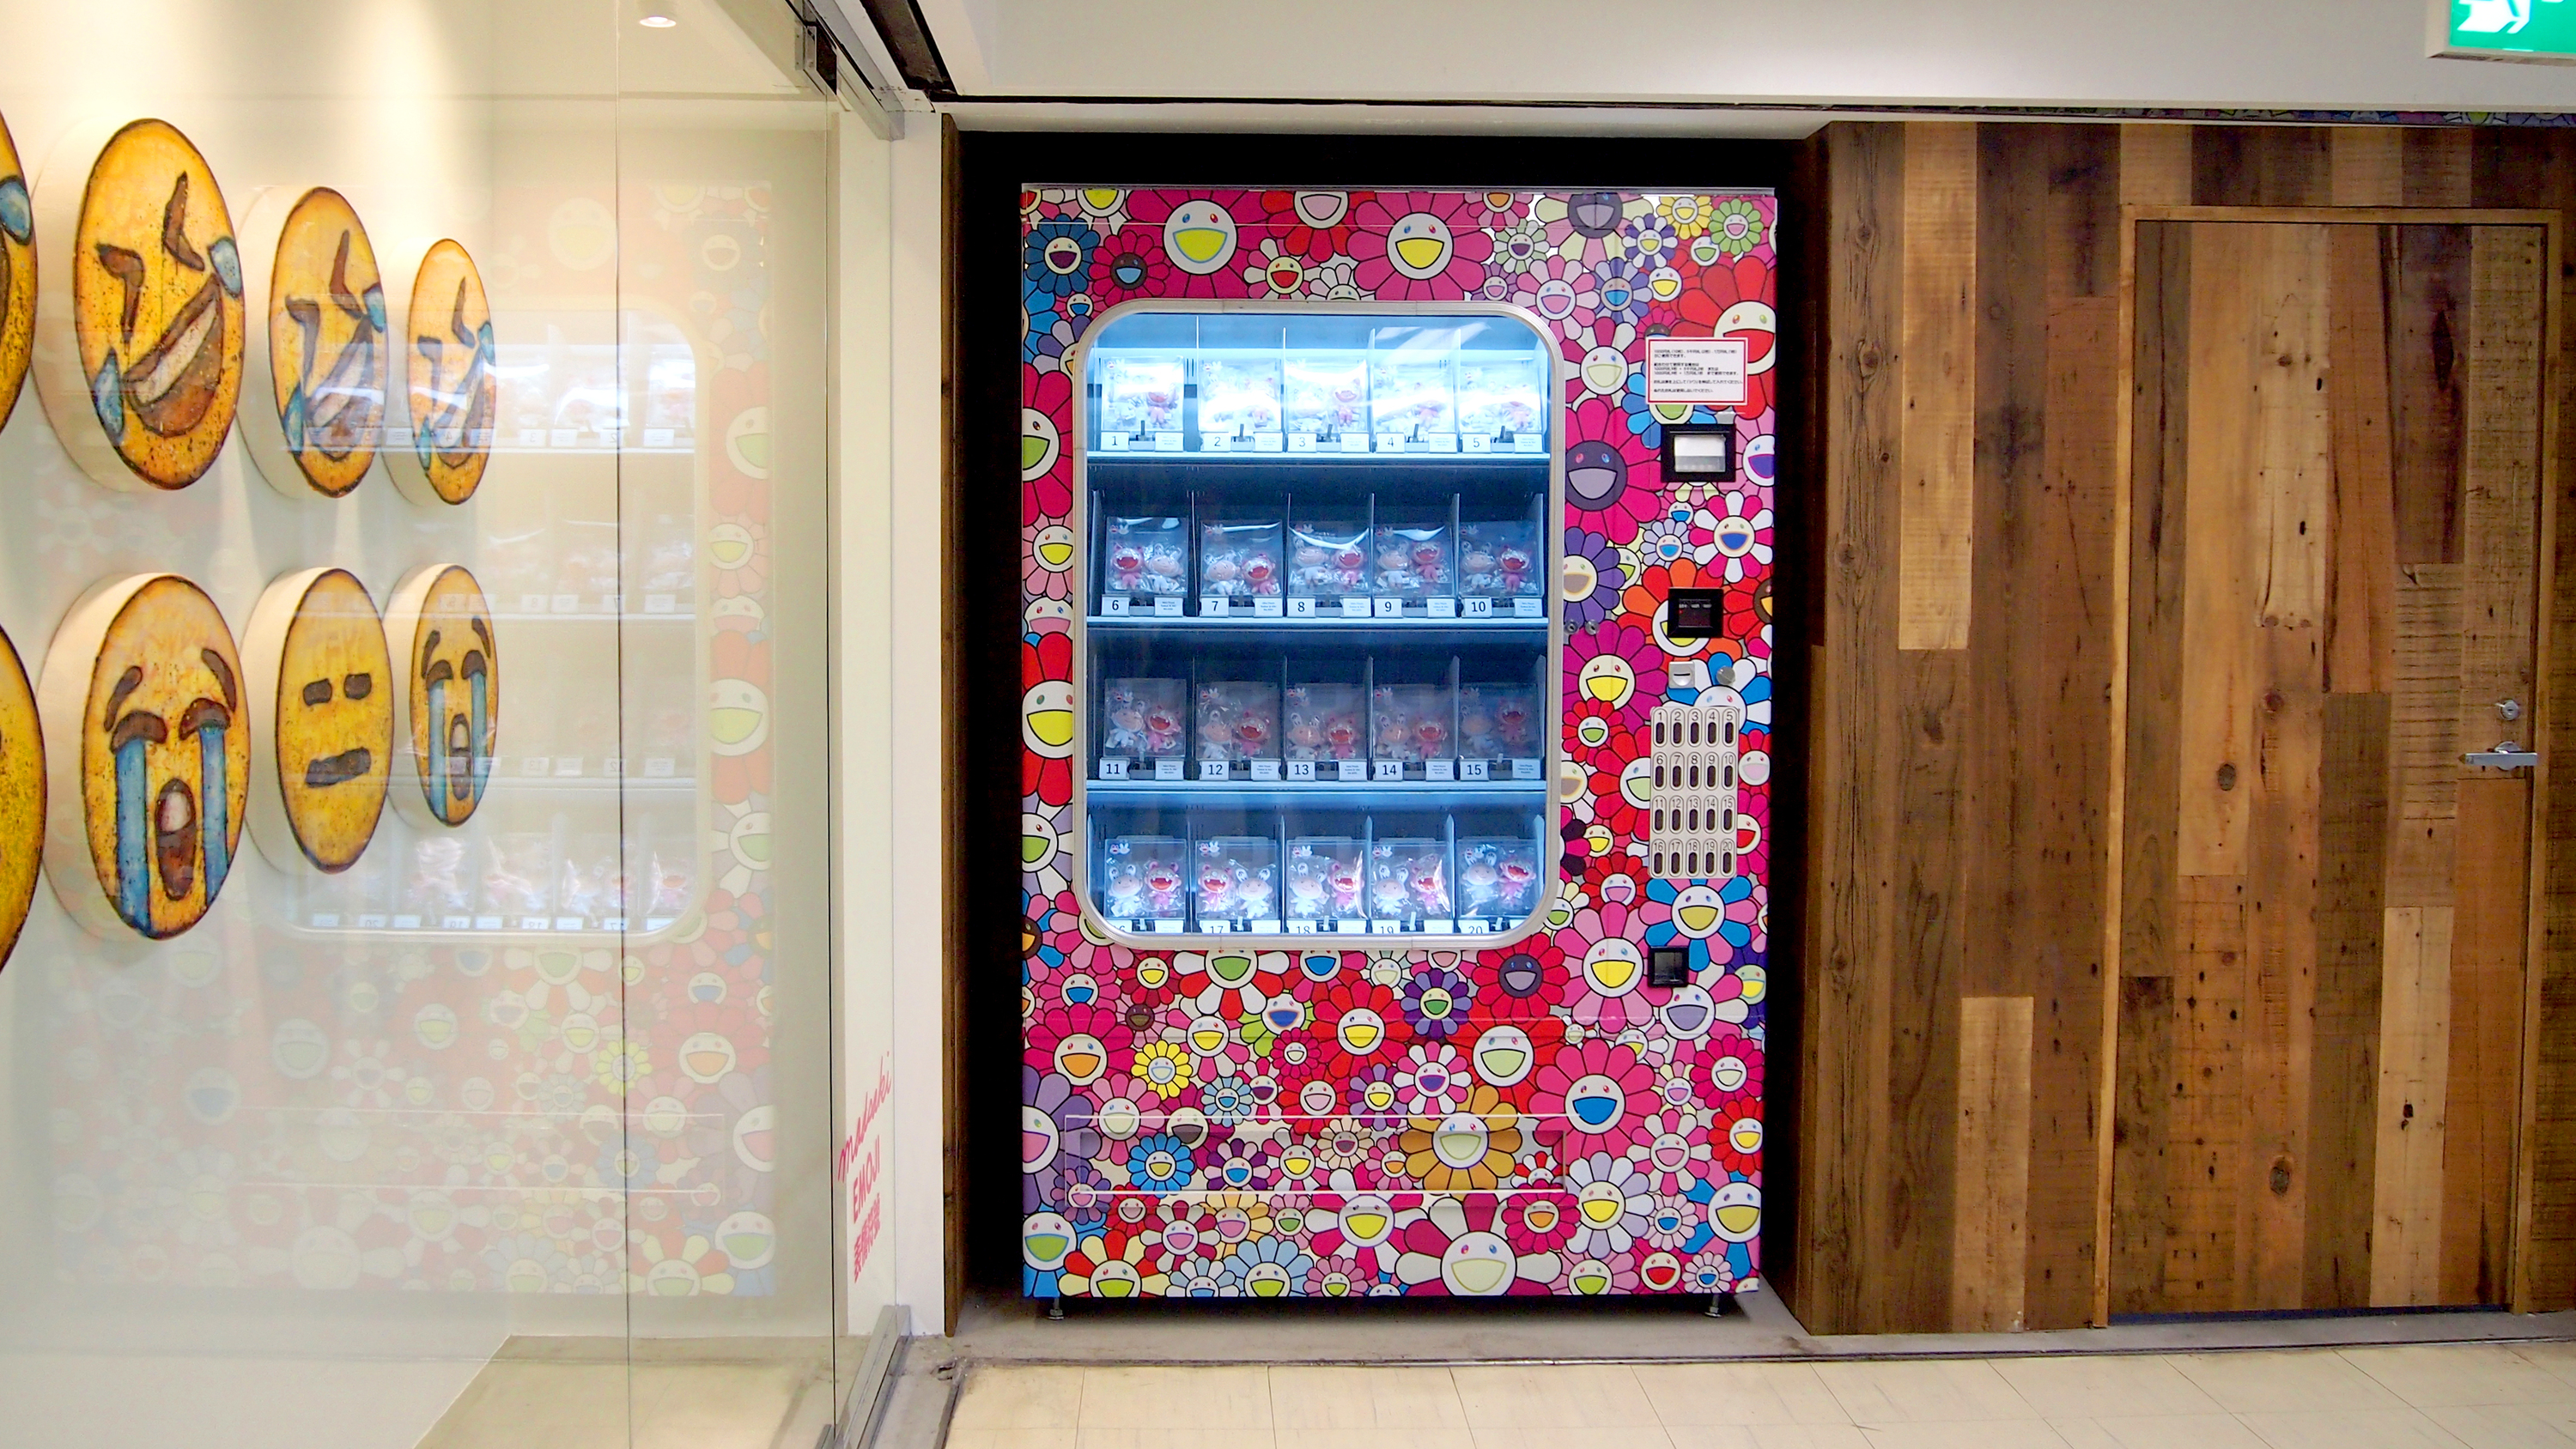 Takashi Murakami has a Kaikai and Kiki vending machine in Nakano Broadway